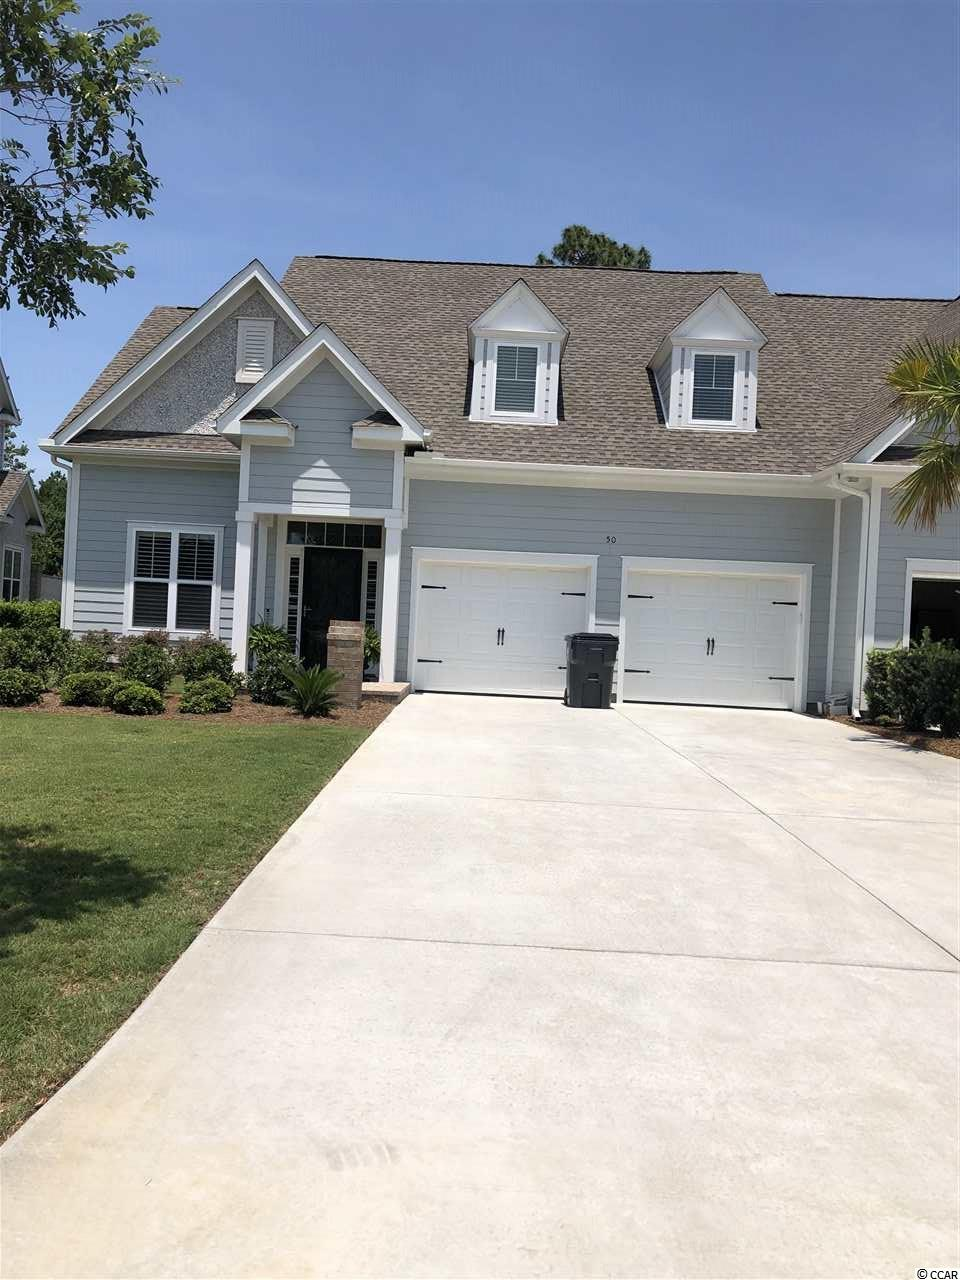 Lot 4 Golf Club Court 4, Pawleys Island, SC 29585